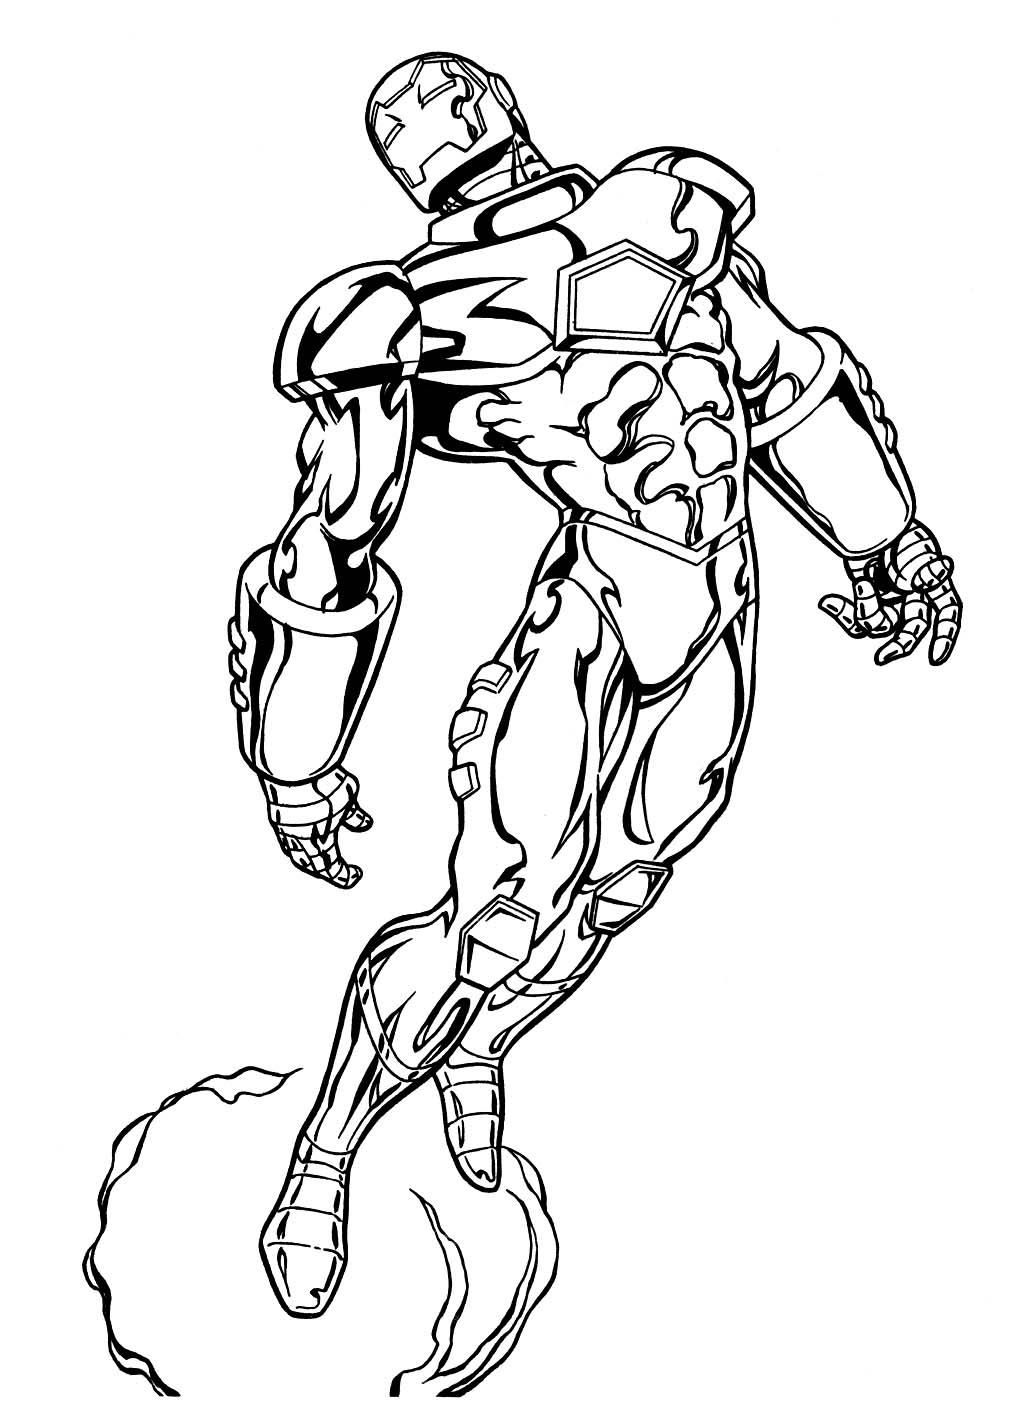 Marvel comics coloring pages printable ~ Marvel superheroes coloring pages for Kids | Projects to ...